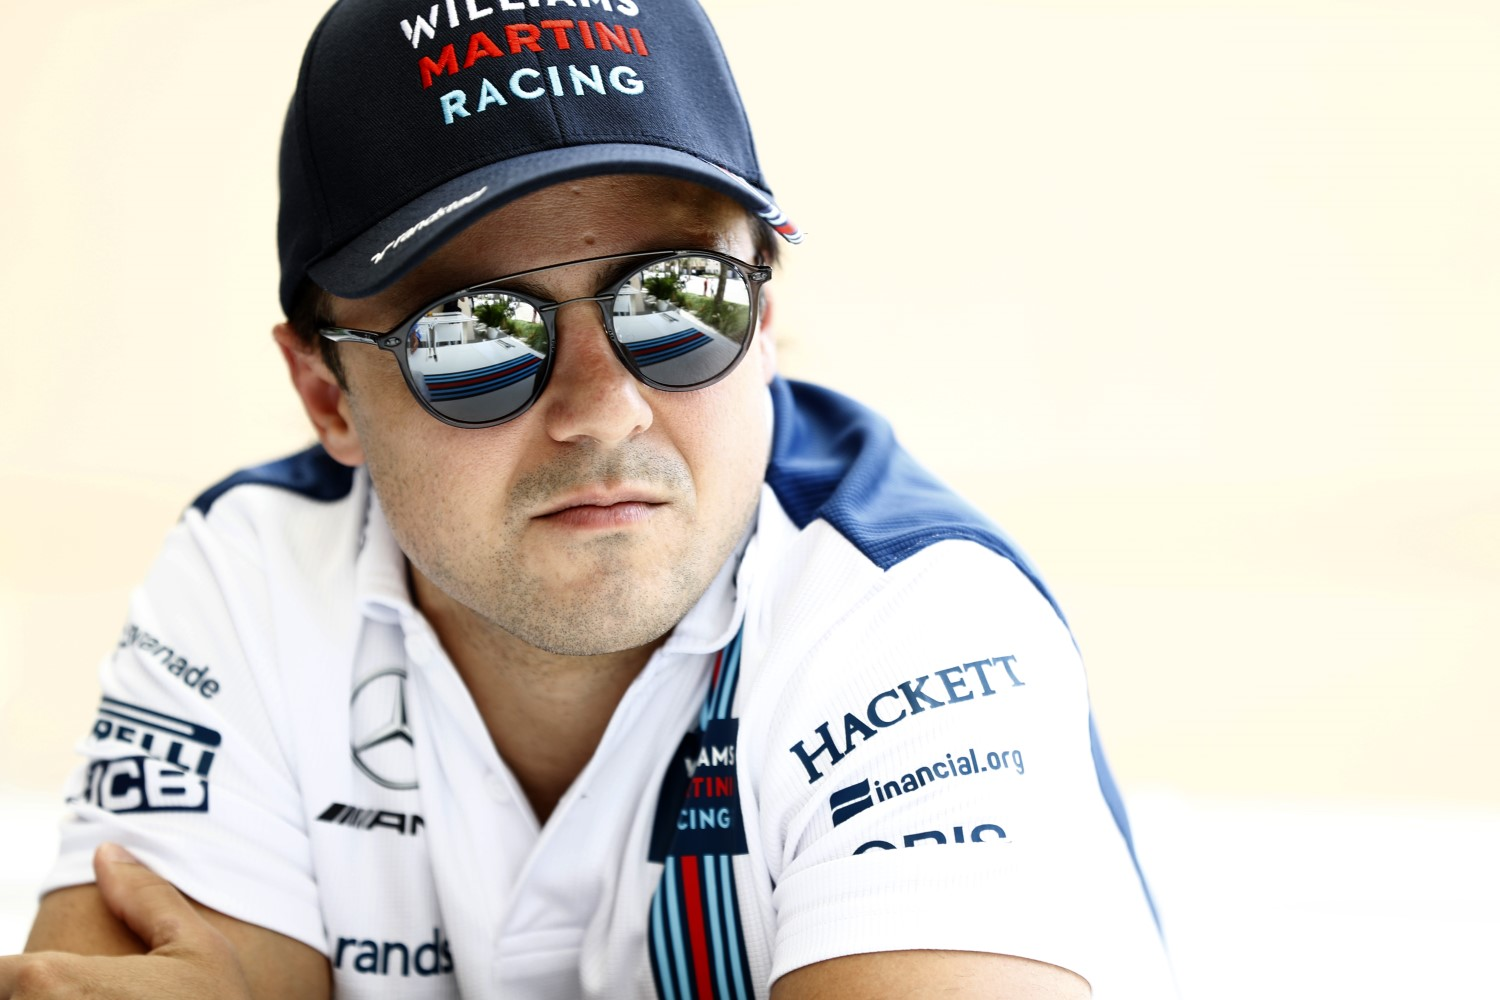 Massa said he won't live in his own country of Brazil because it is too unsafe